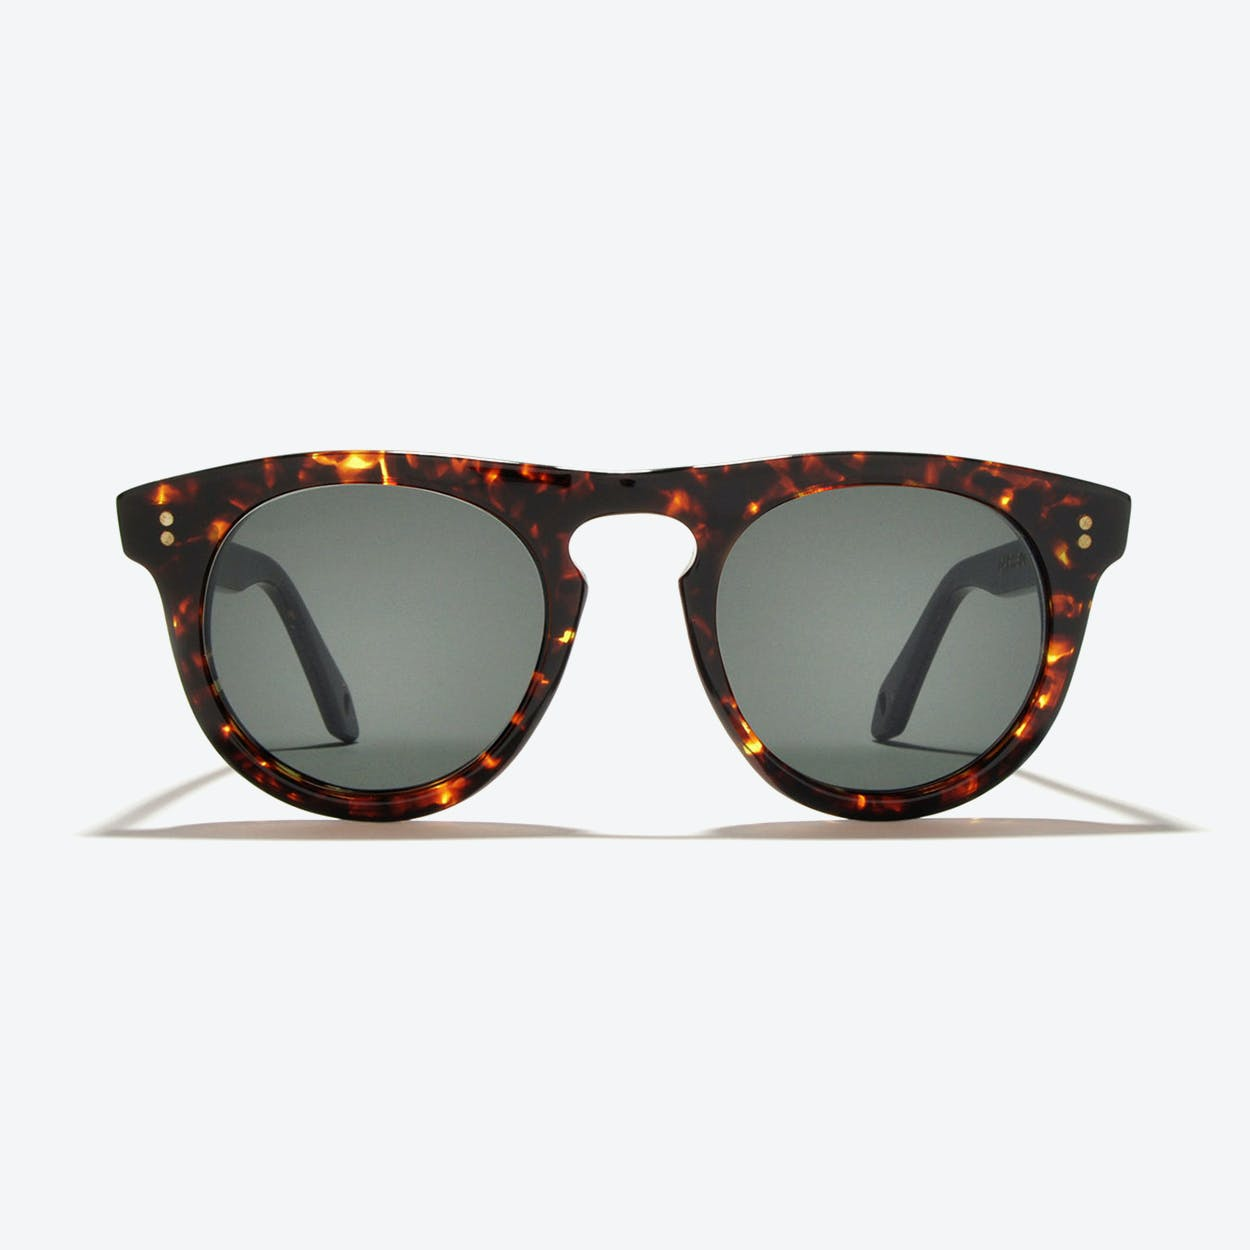 Corvus Sunglasses in Tortoise